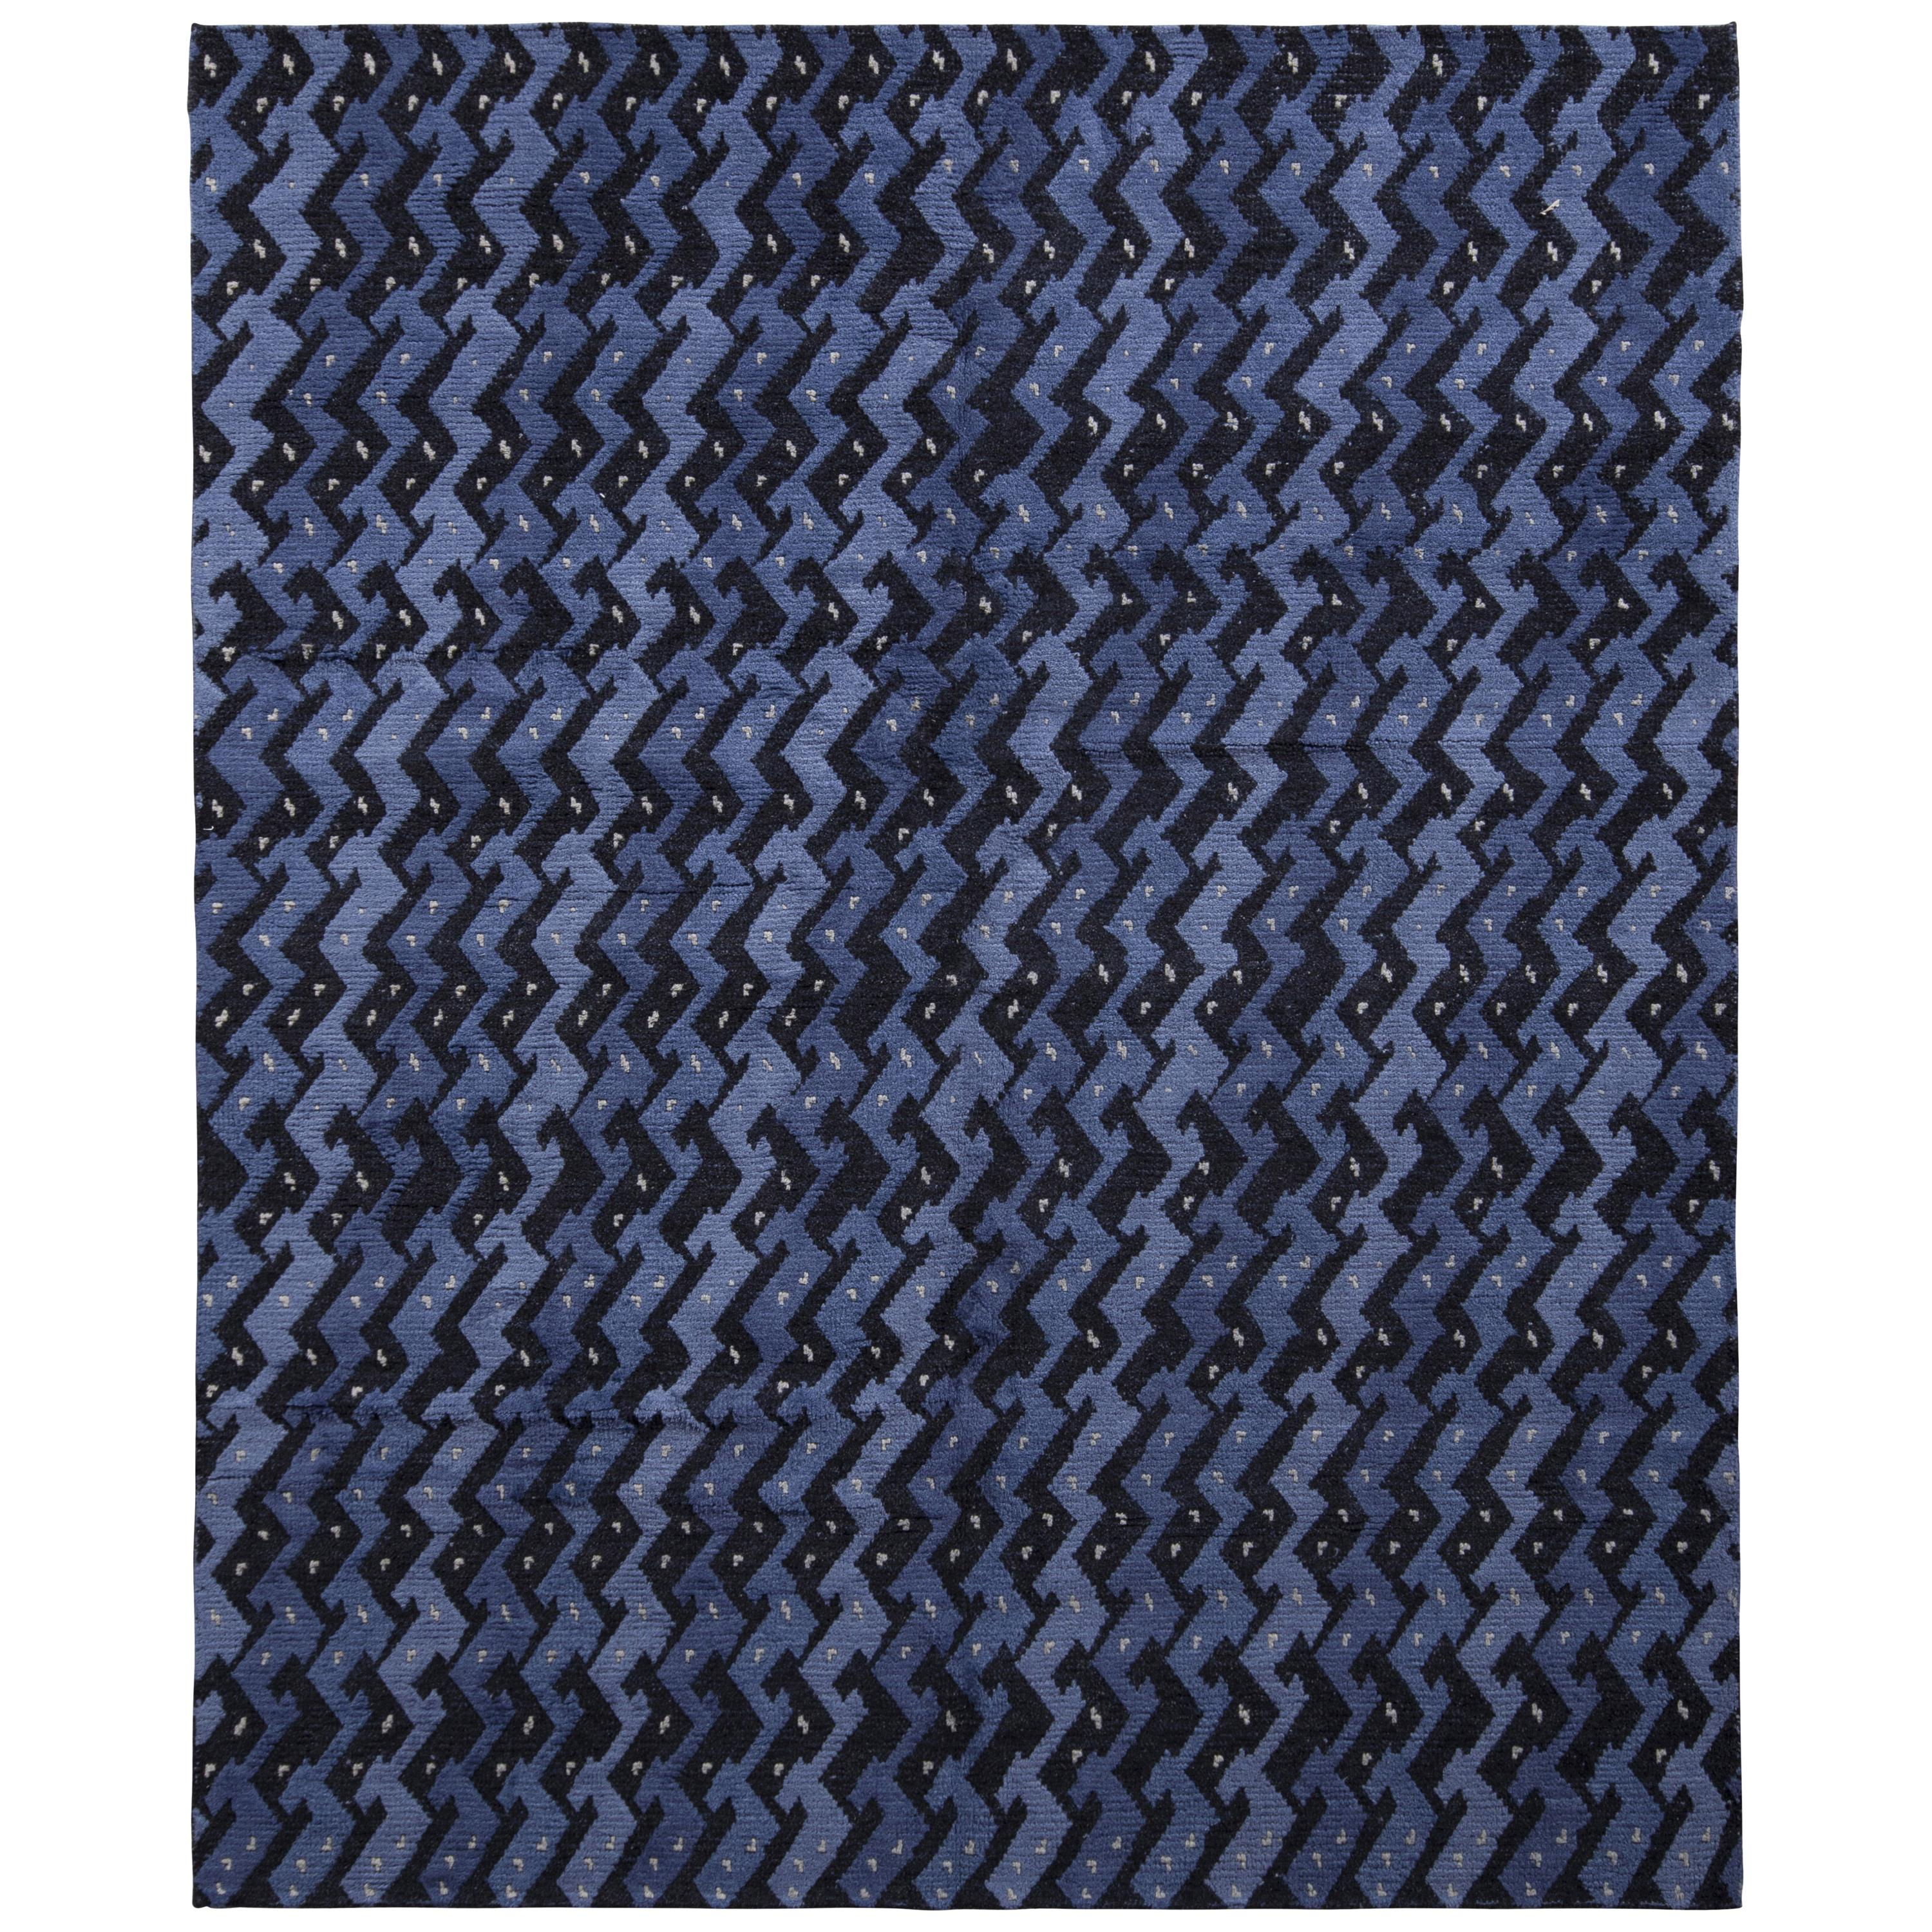 Rug & Kilim's Scandinavian Style Rug in Blue and Black Geometric Pattern